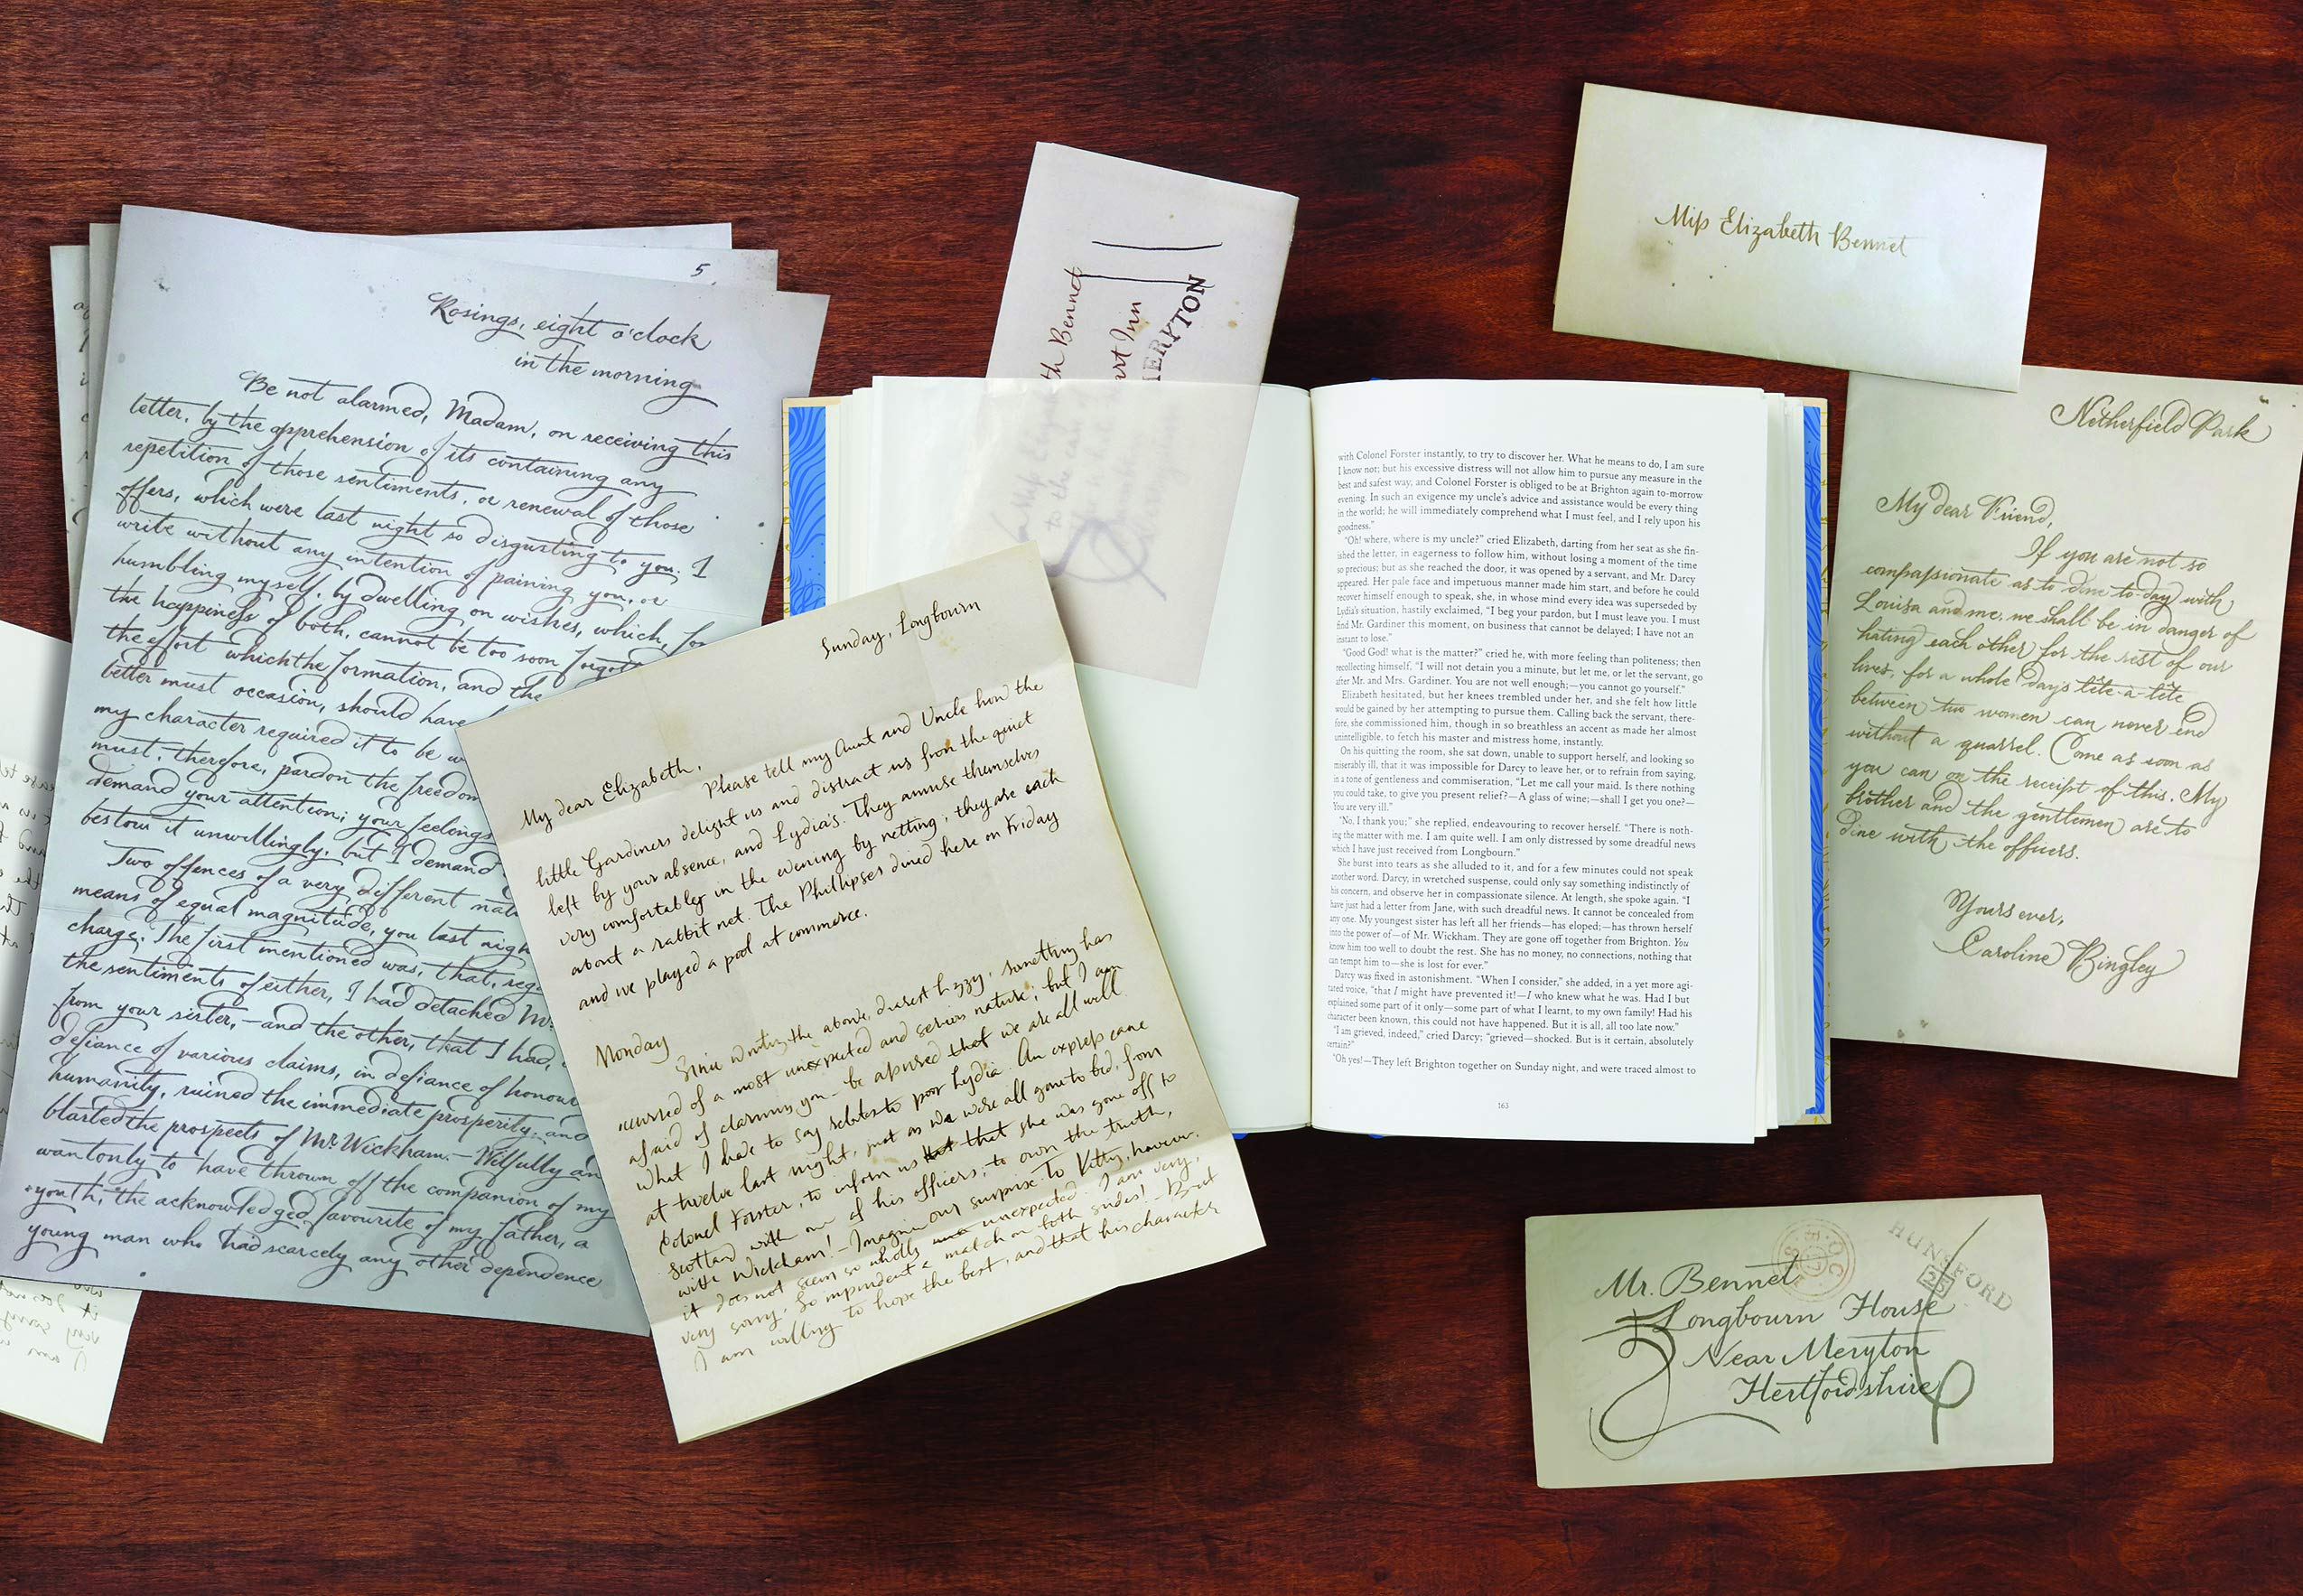 handwritten letters on a wooden table